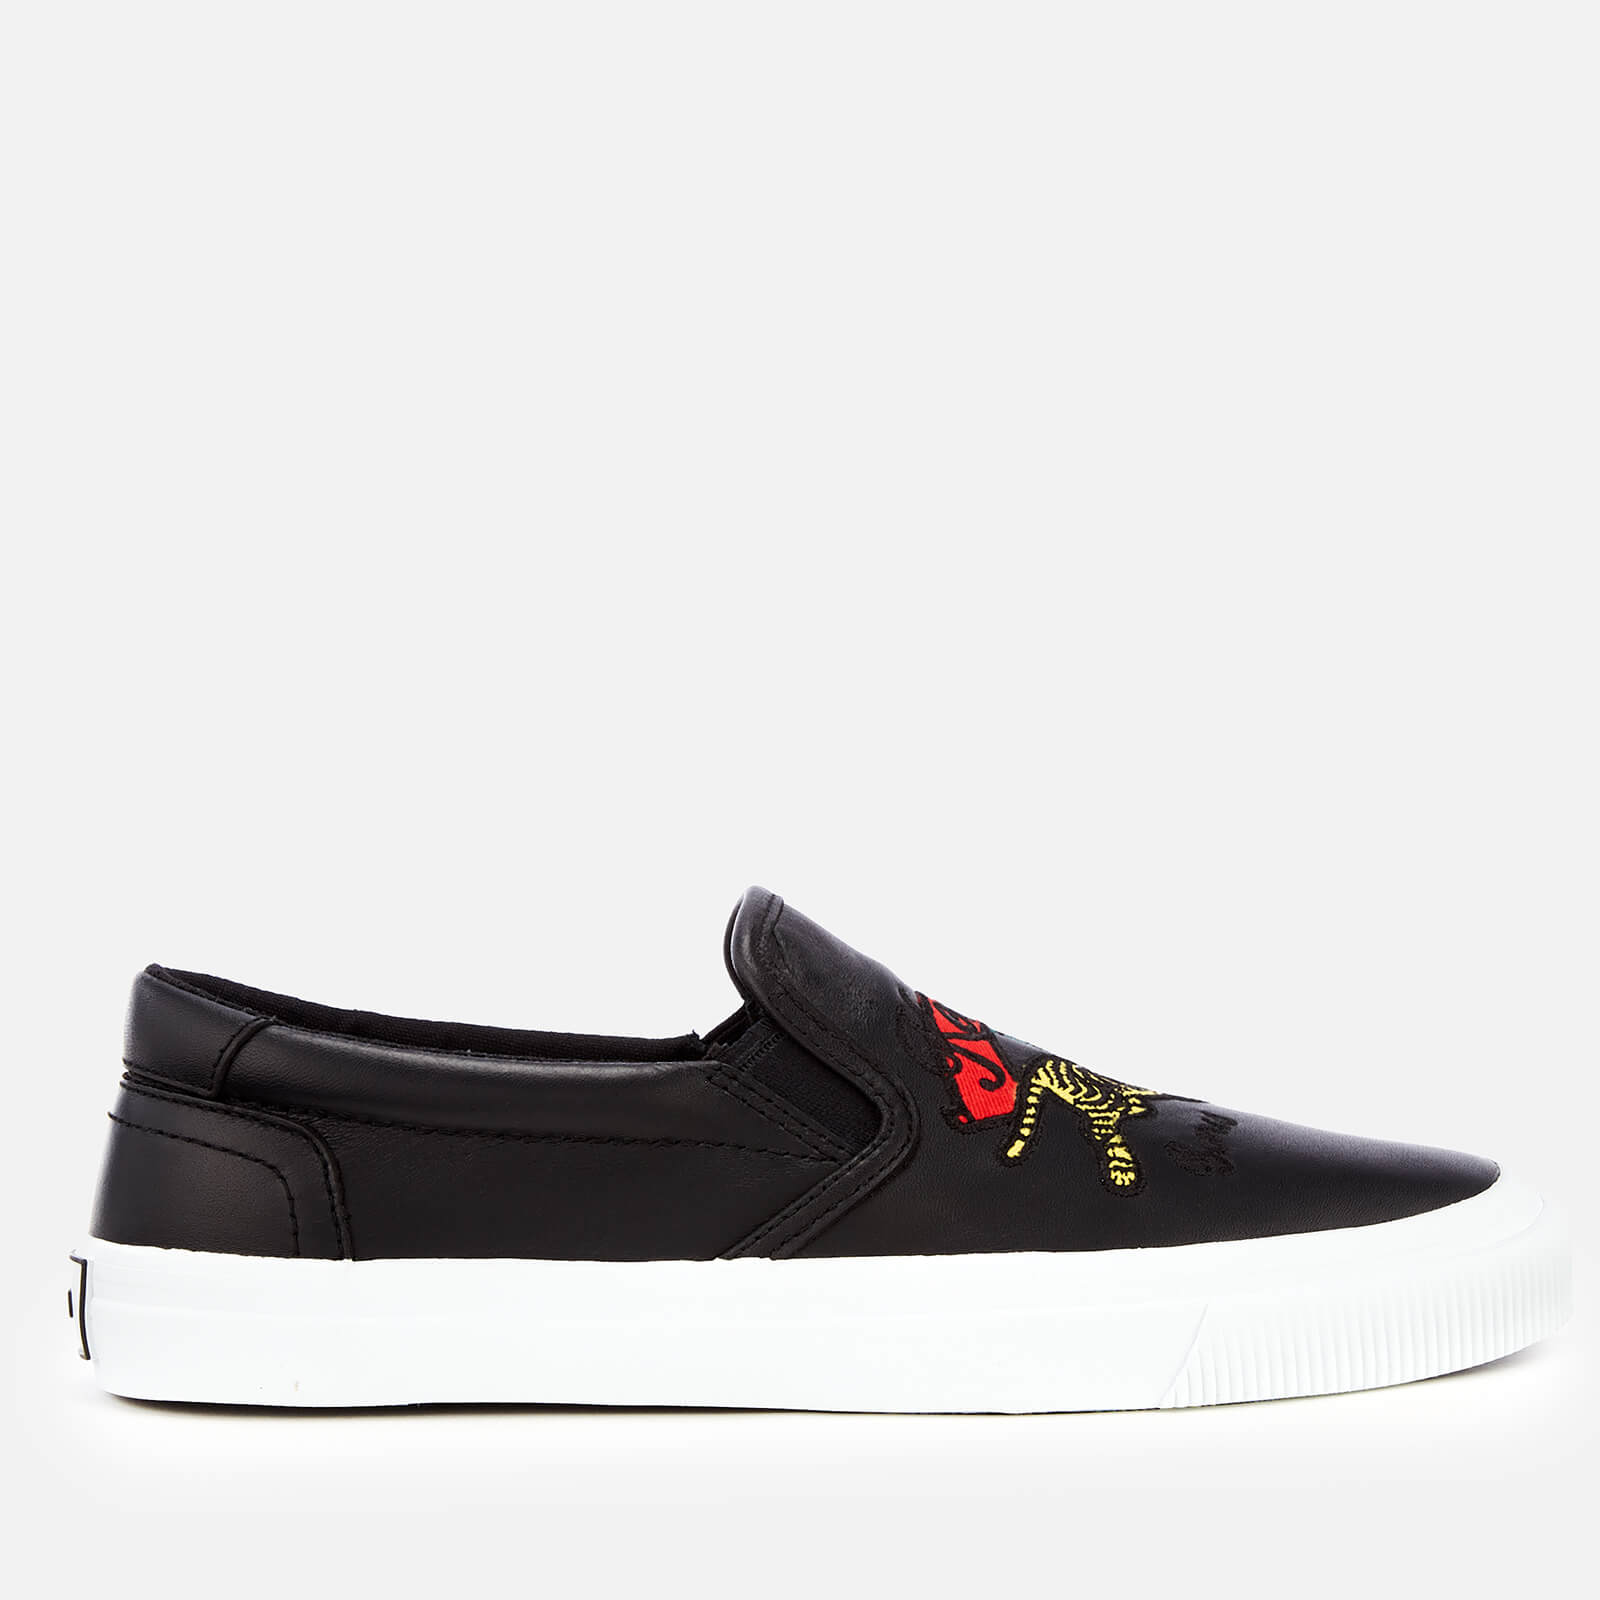 f3864387e5d KENZO Women s K-Skate Jumping Tiger Slip-On Trainers - Black - Free UK  Delivery over £50